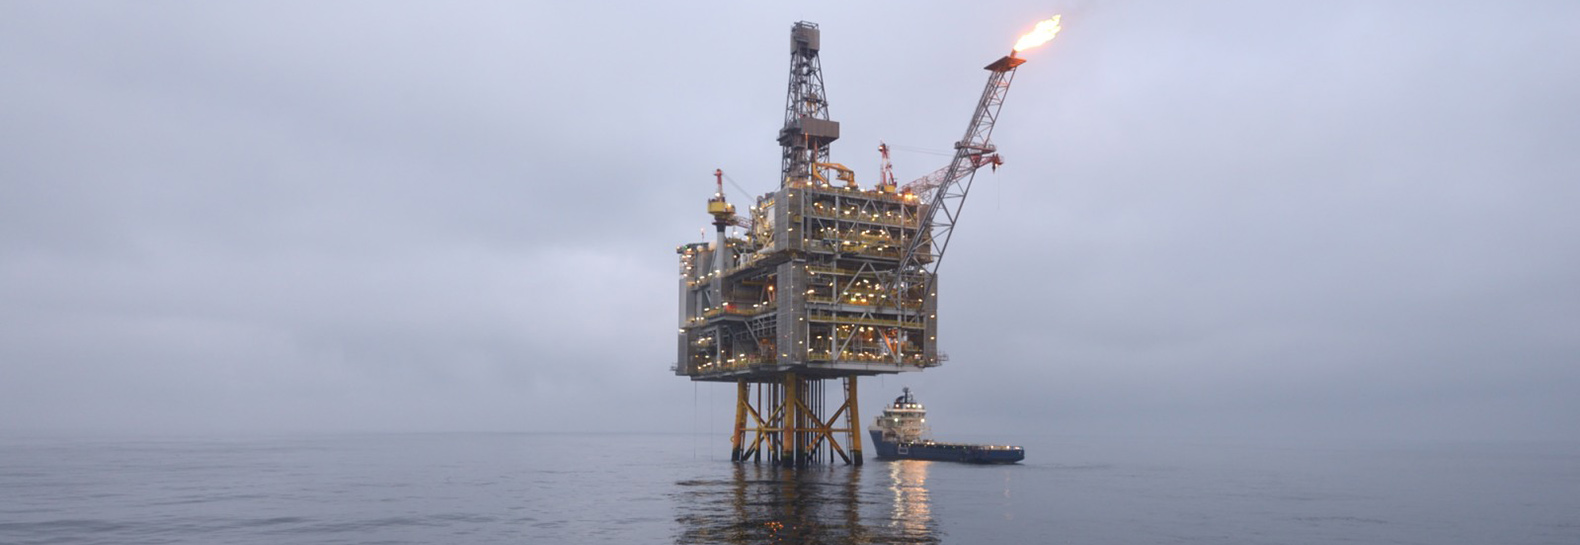 BP oil platform in the North Sea leaks and there are no plans to clean it up